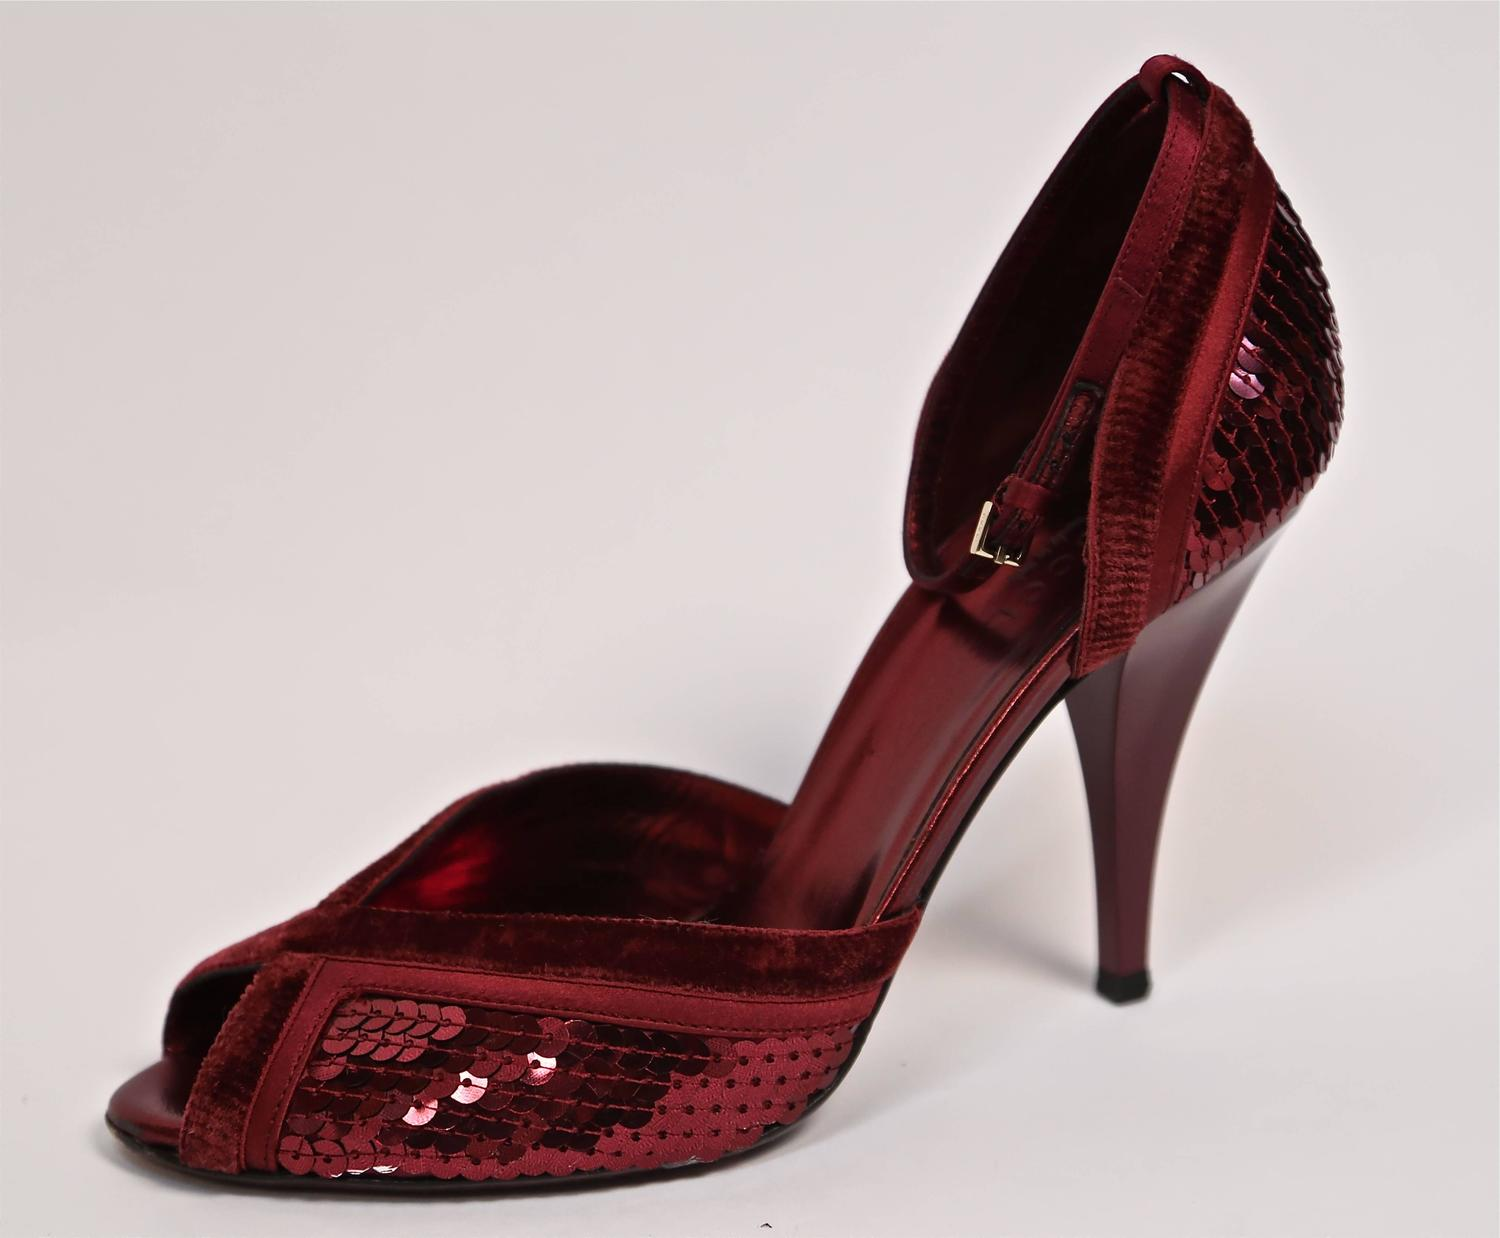 Tom Ford For Gucci Burgundy Sequined Heels 8 At 1stdibs